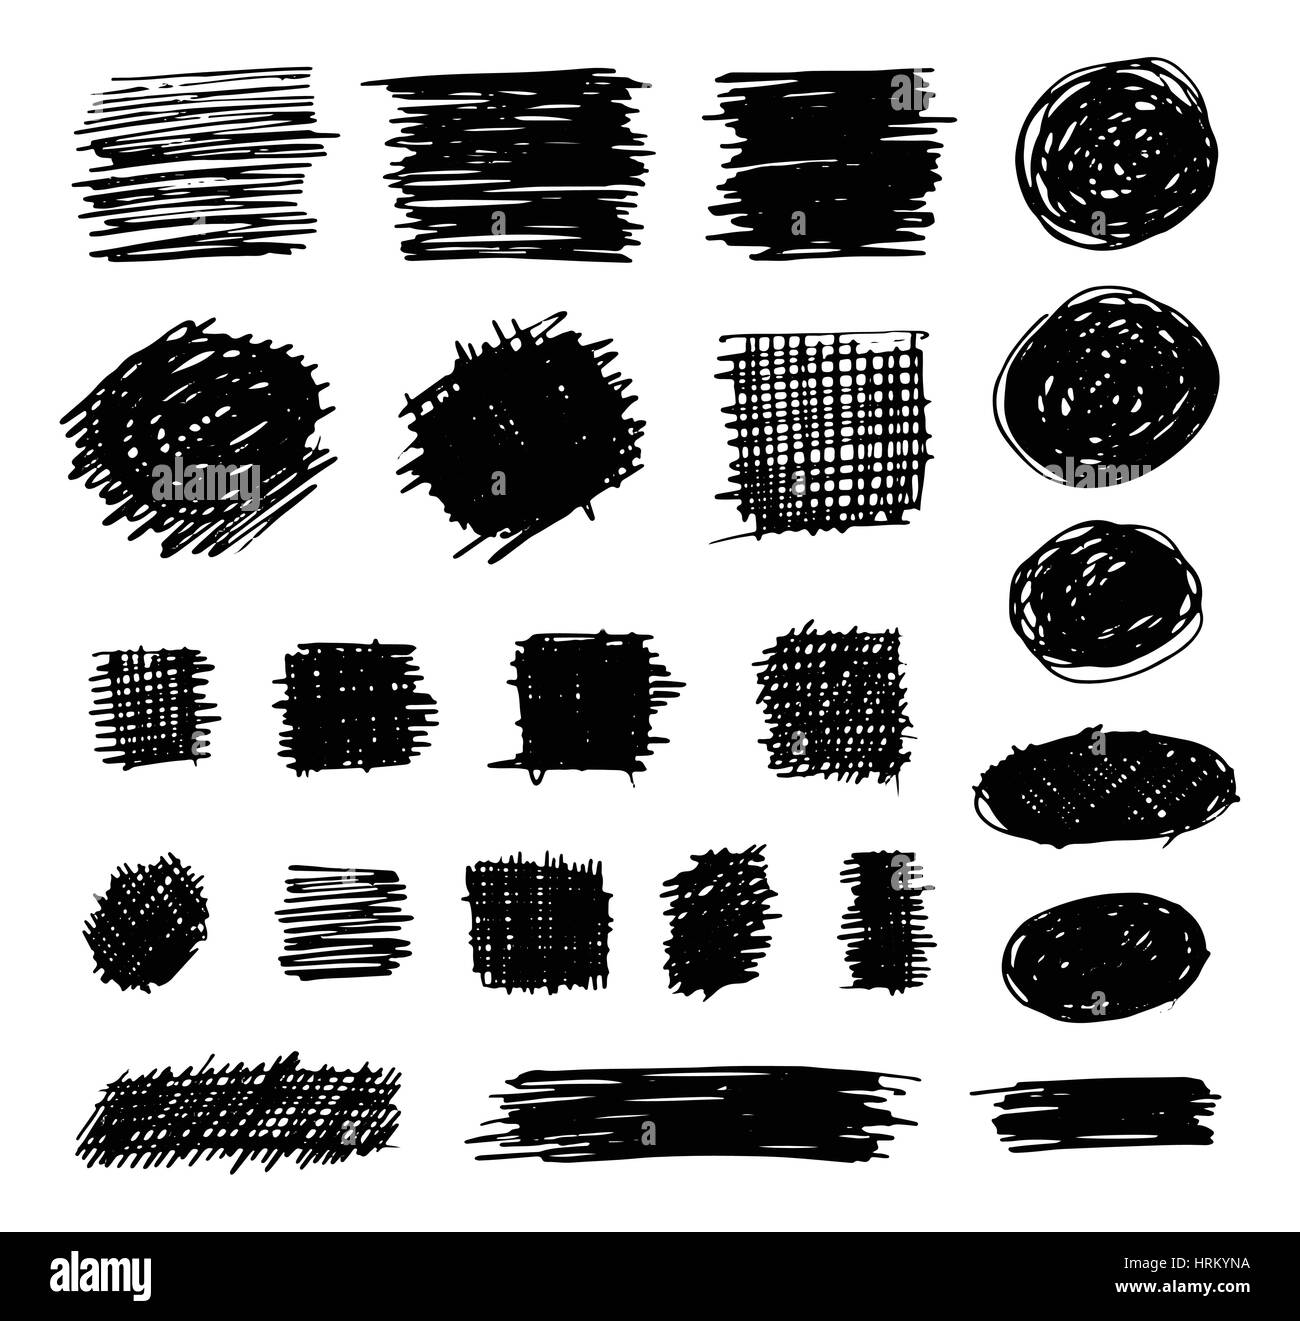 Hand Drawn Shaded Scribble Shapes - Stock Image